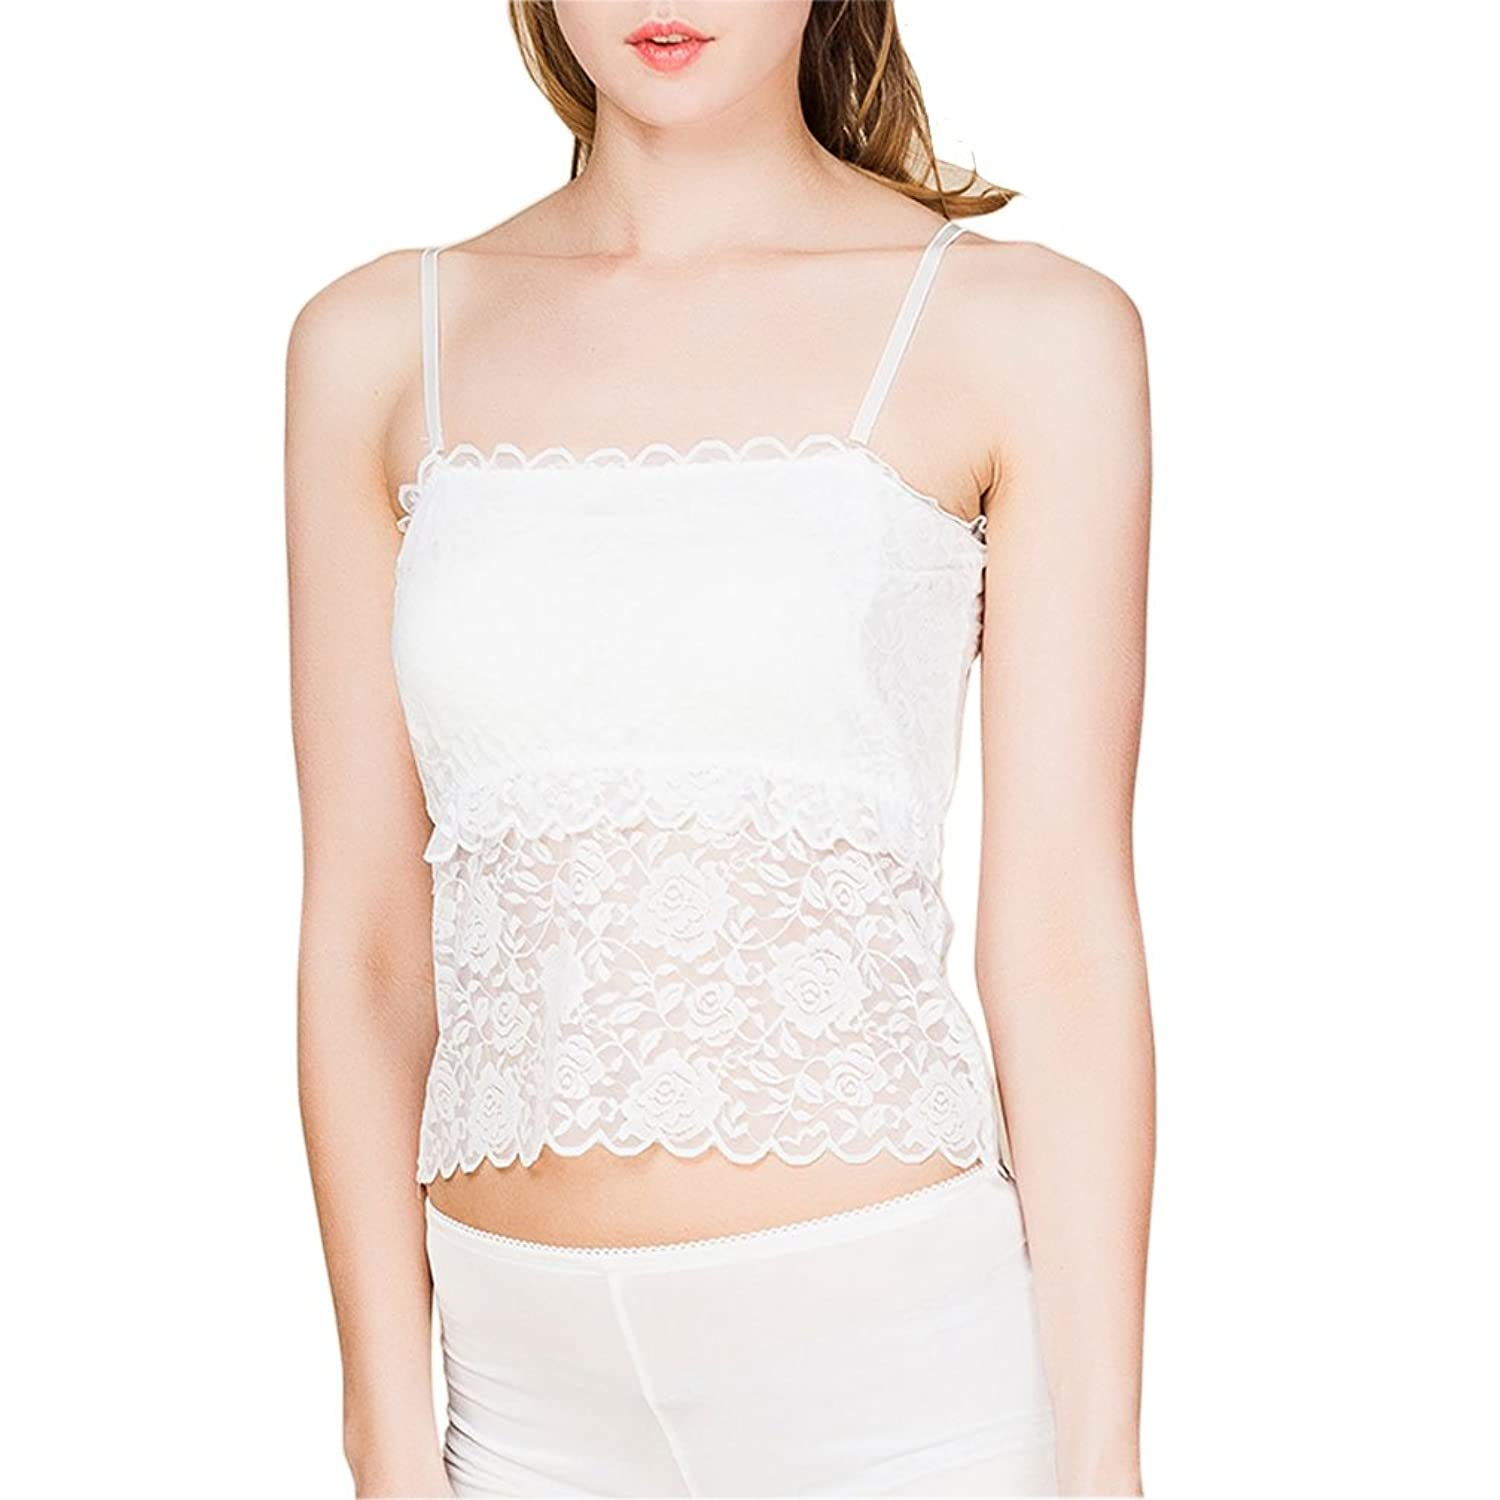 1920s Style Lingerie Paradise Silk 100% Silk Knit Womens Long Lace Tube Top With Removable Strap $16.99 AT vintagedancer.com